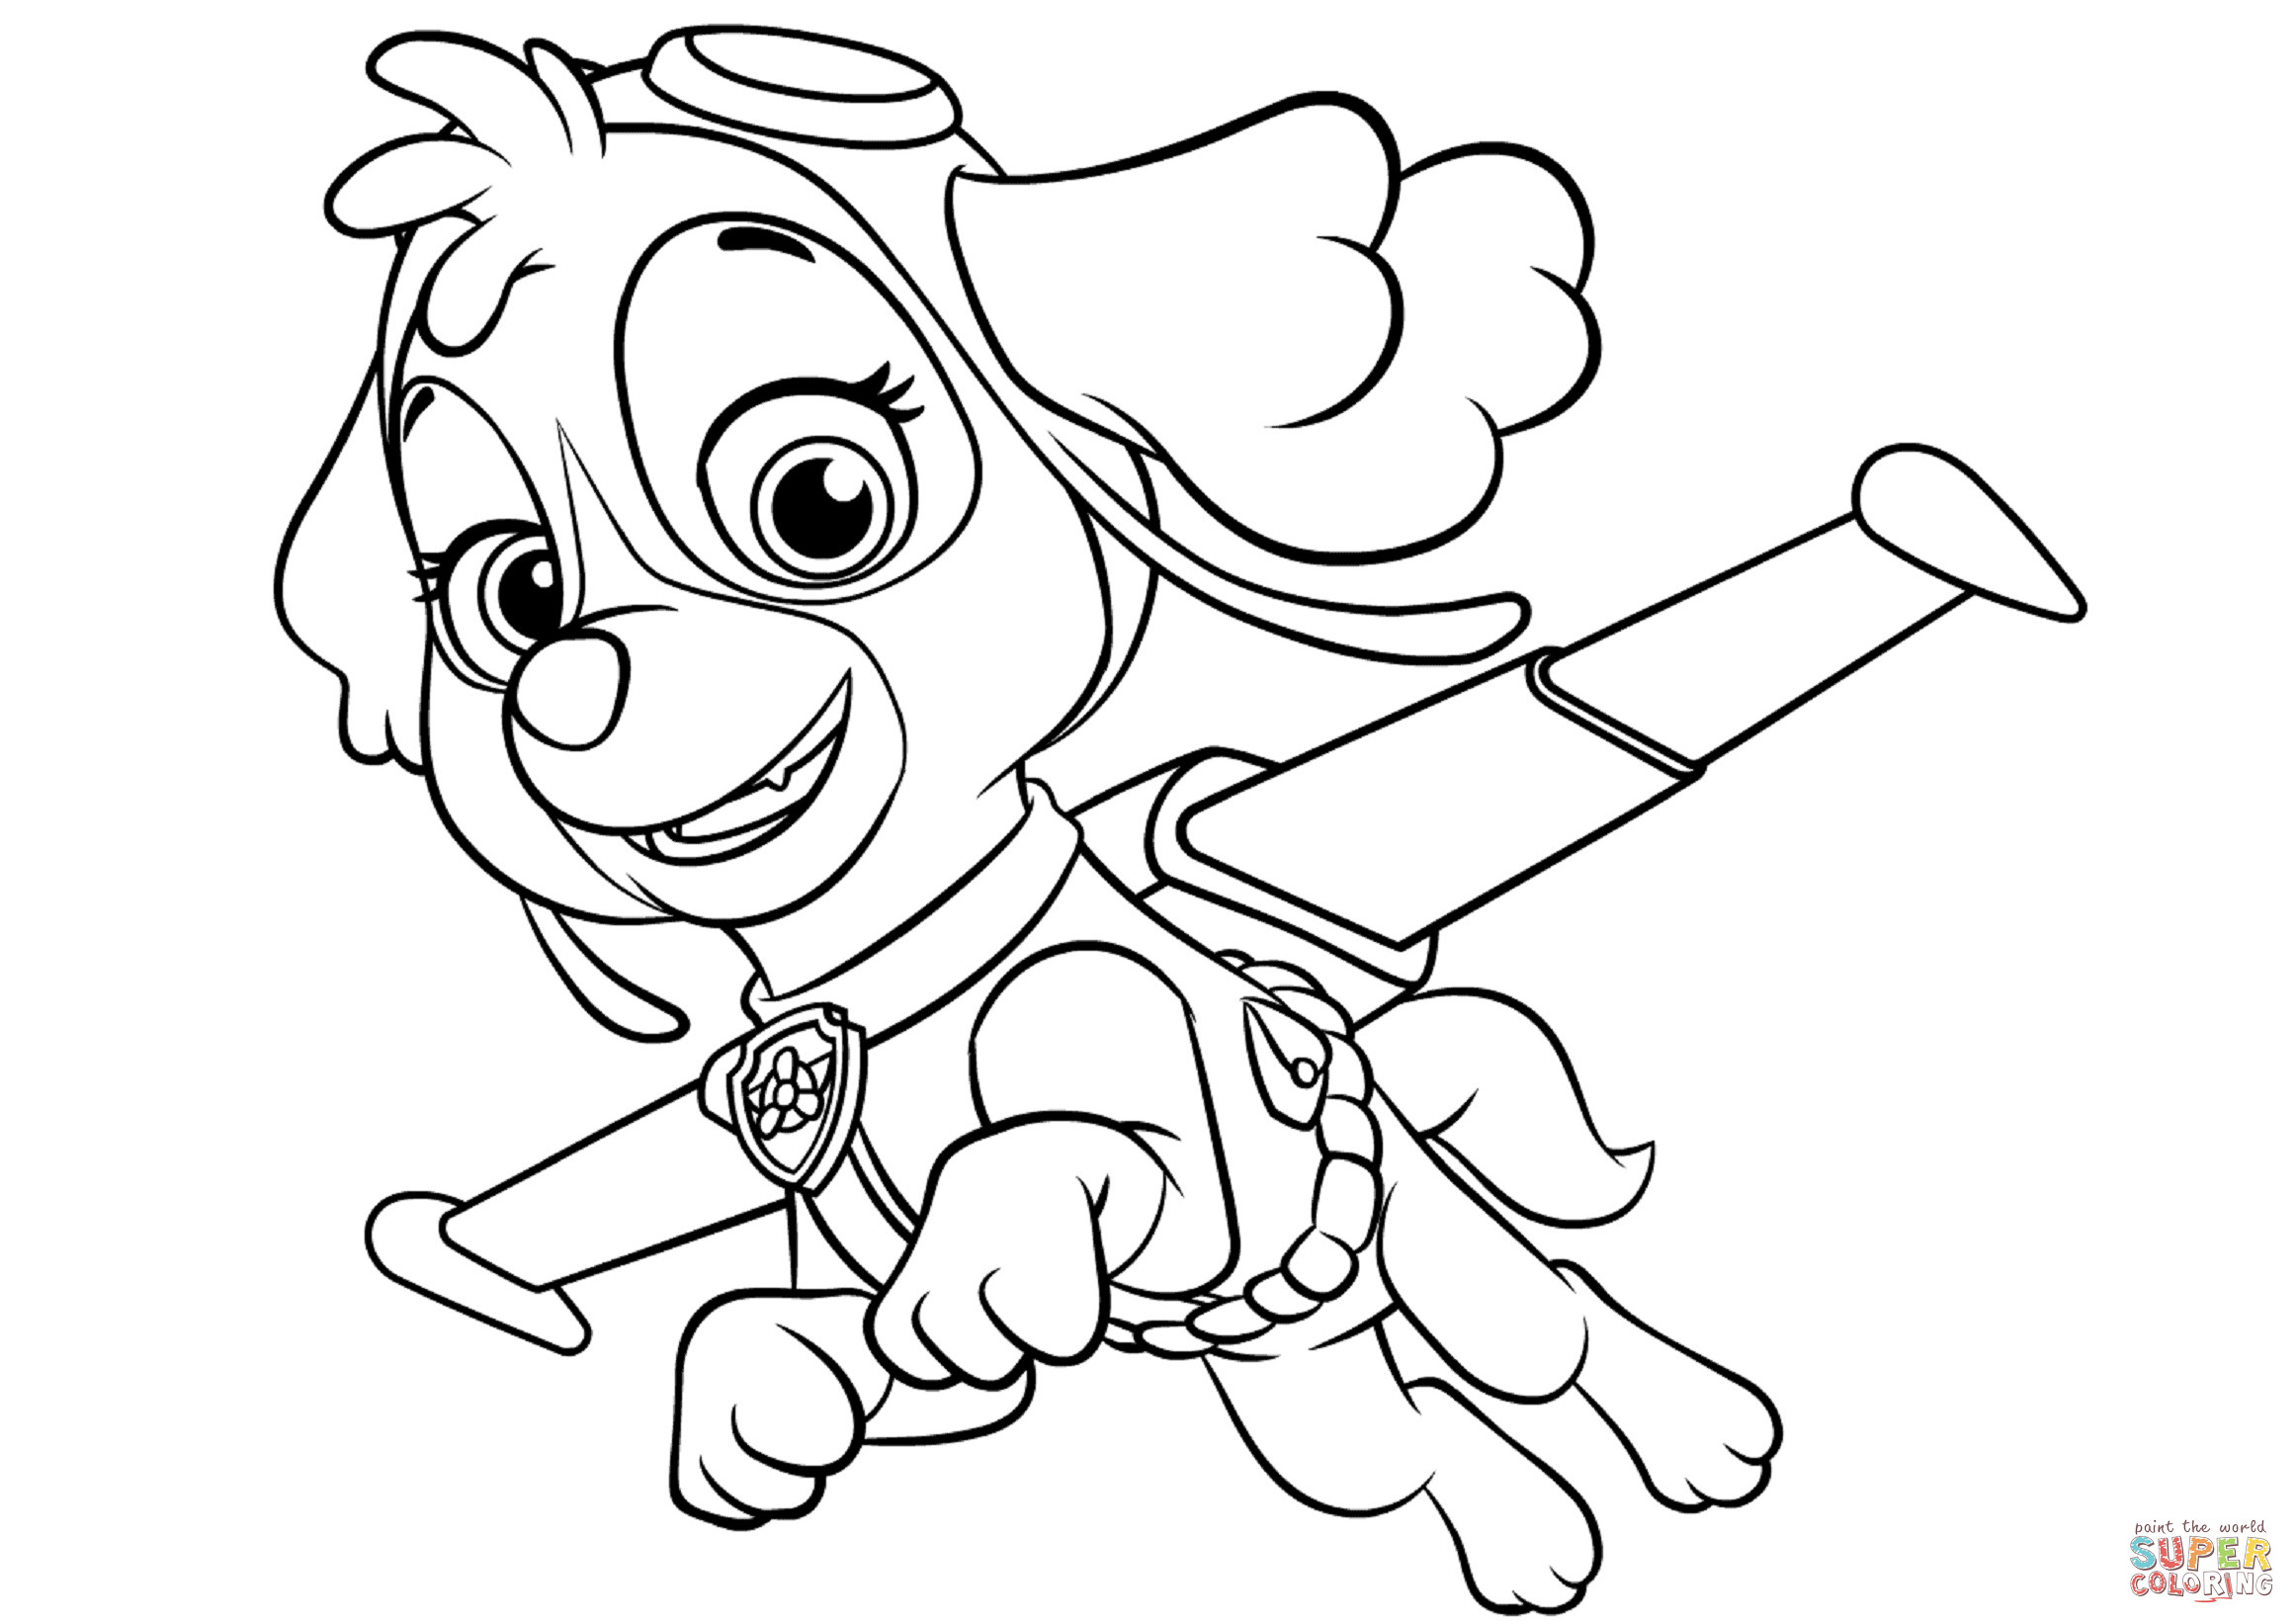 Everest Paw Patrol Coloring Pages at GetDrawings